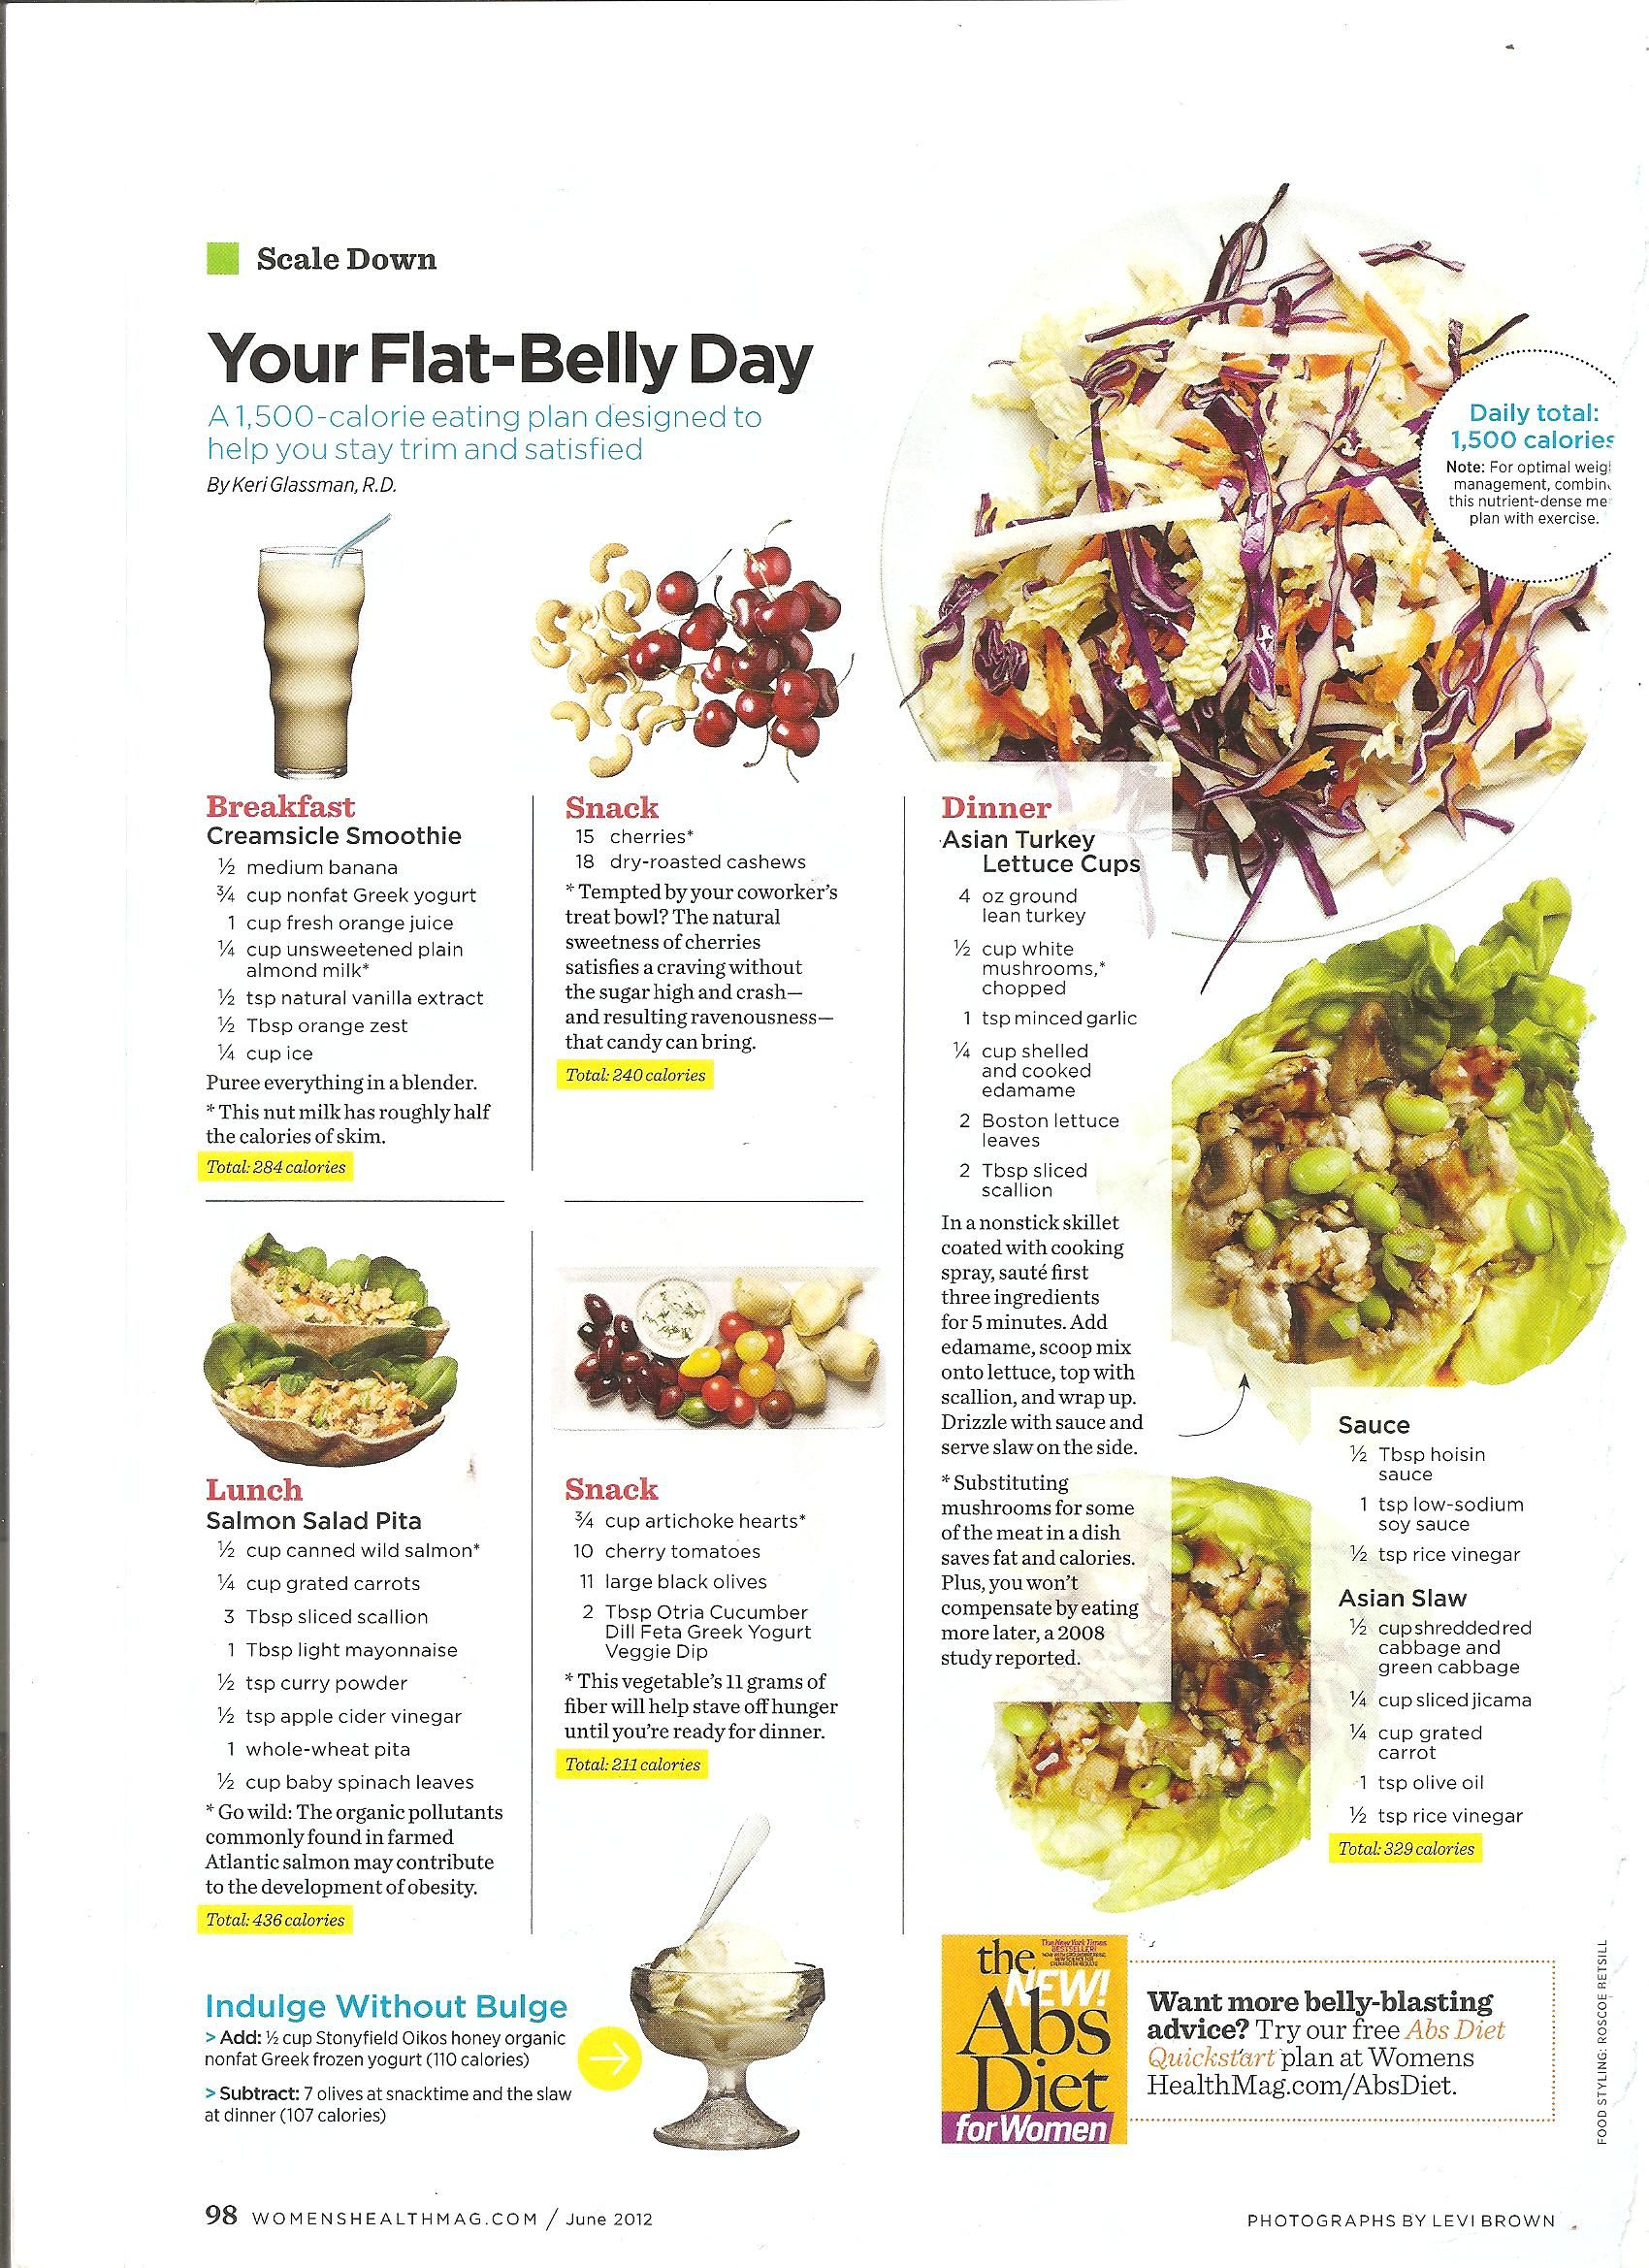 flat belly type diet - what to eat for 7 days. Actually looks ...